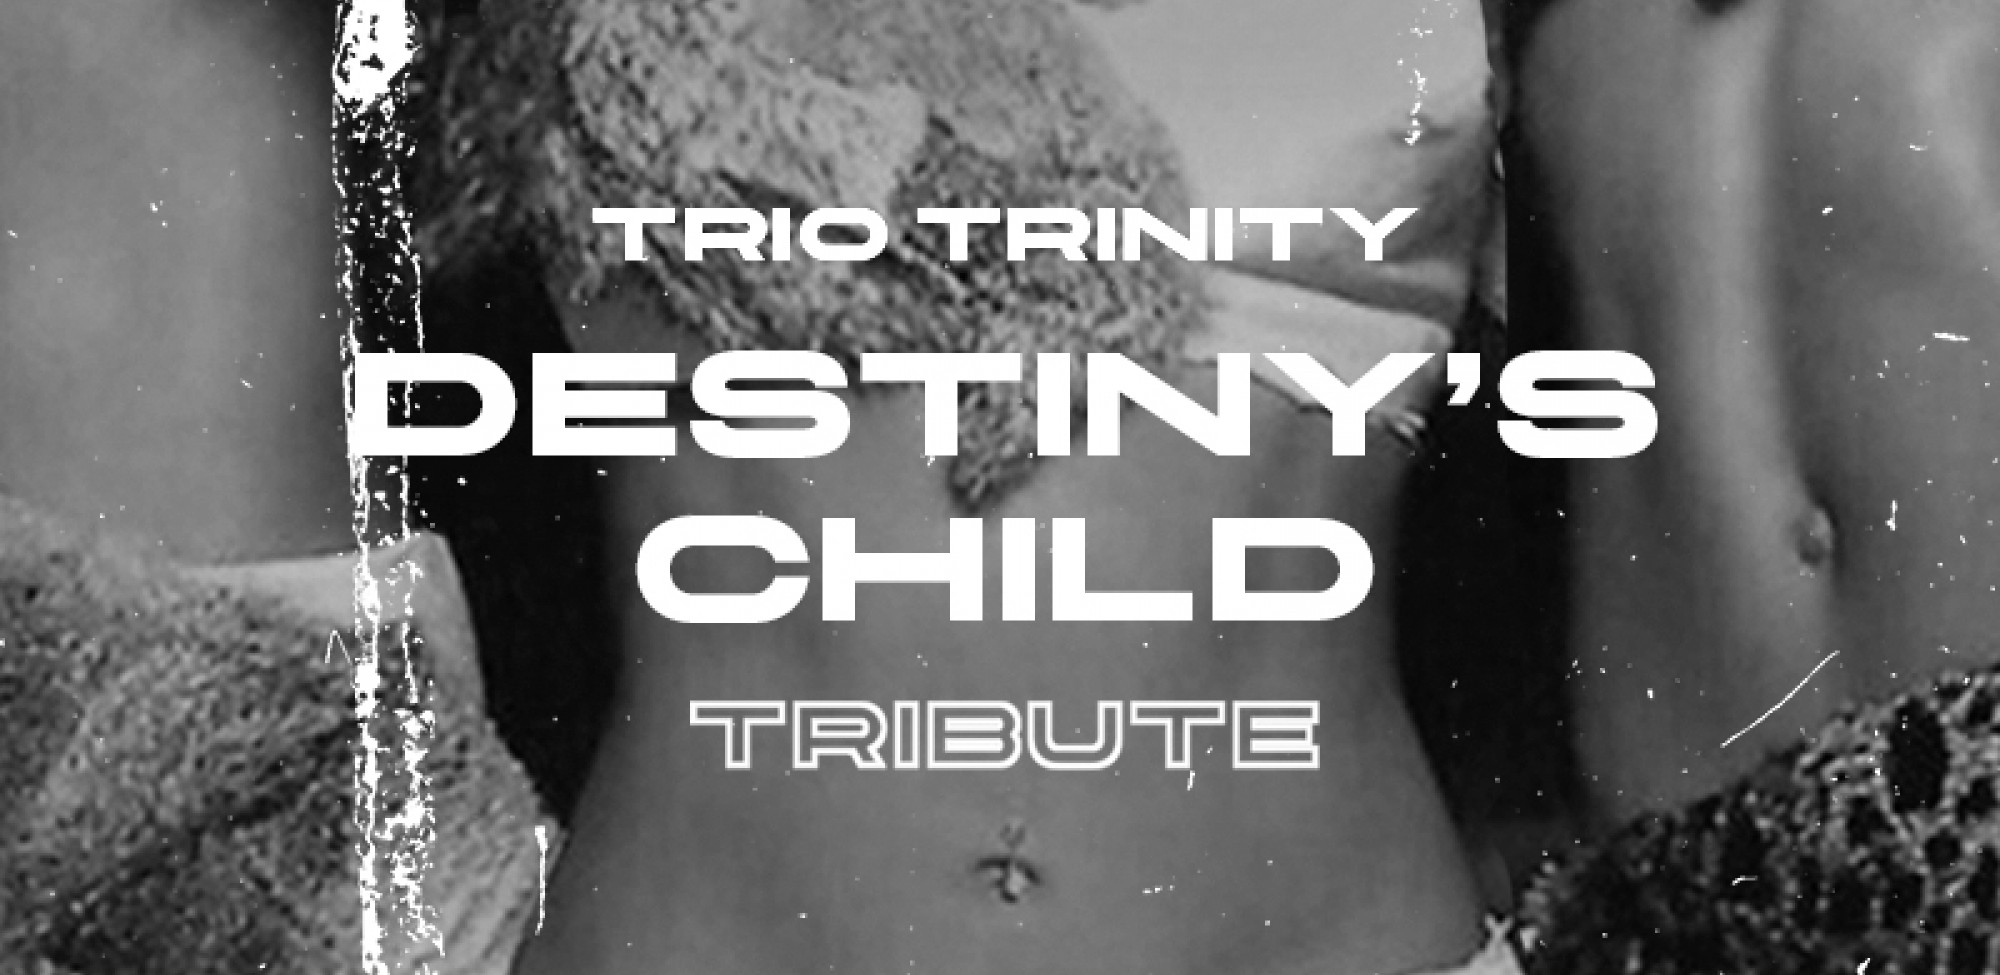 Трибют на Destiny's Child